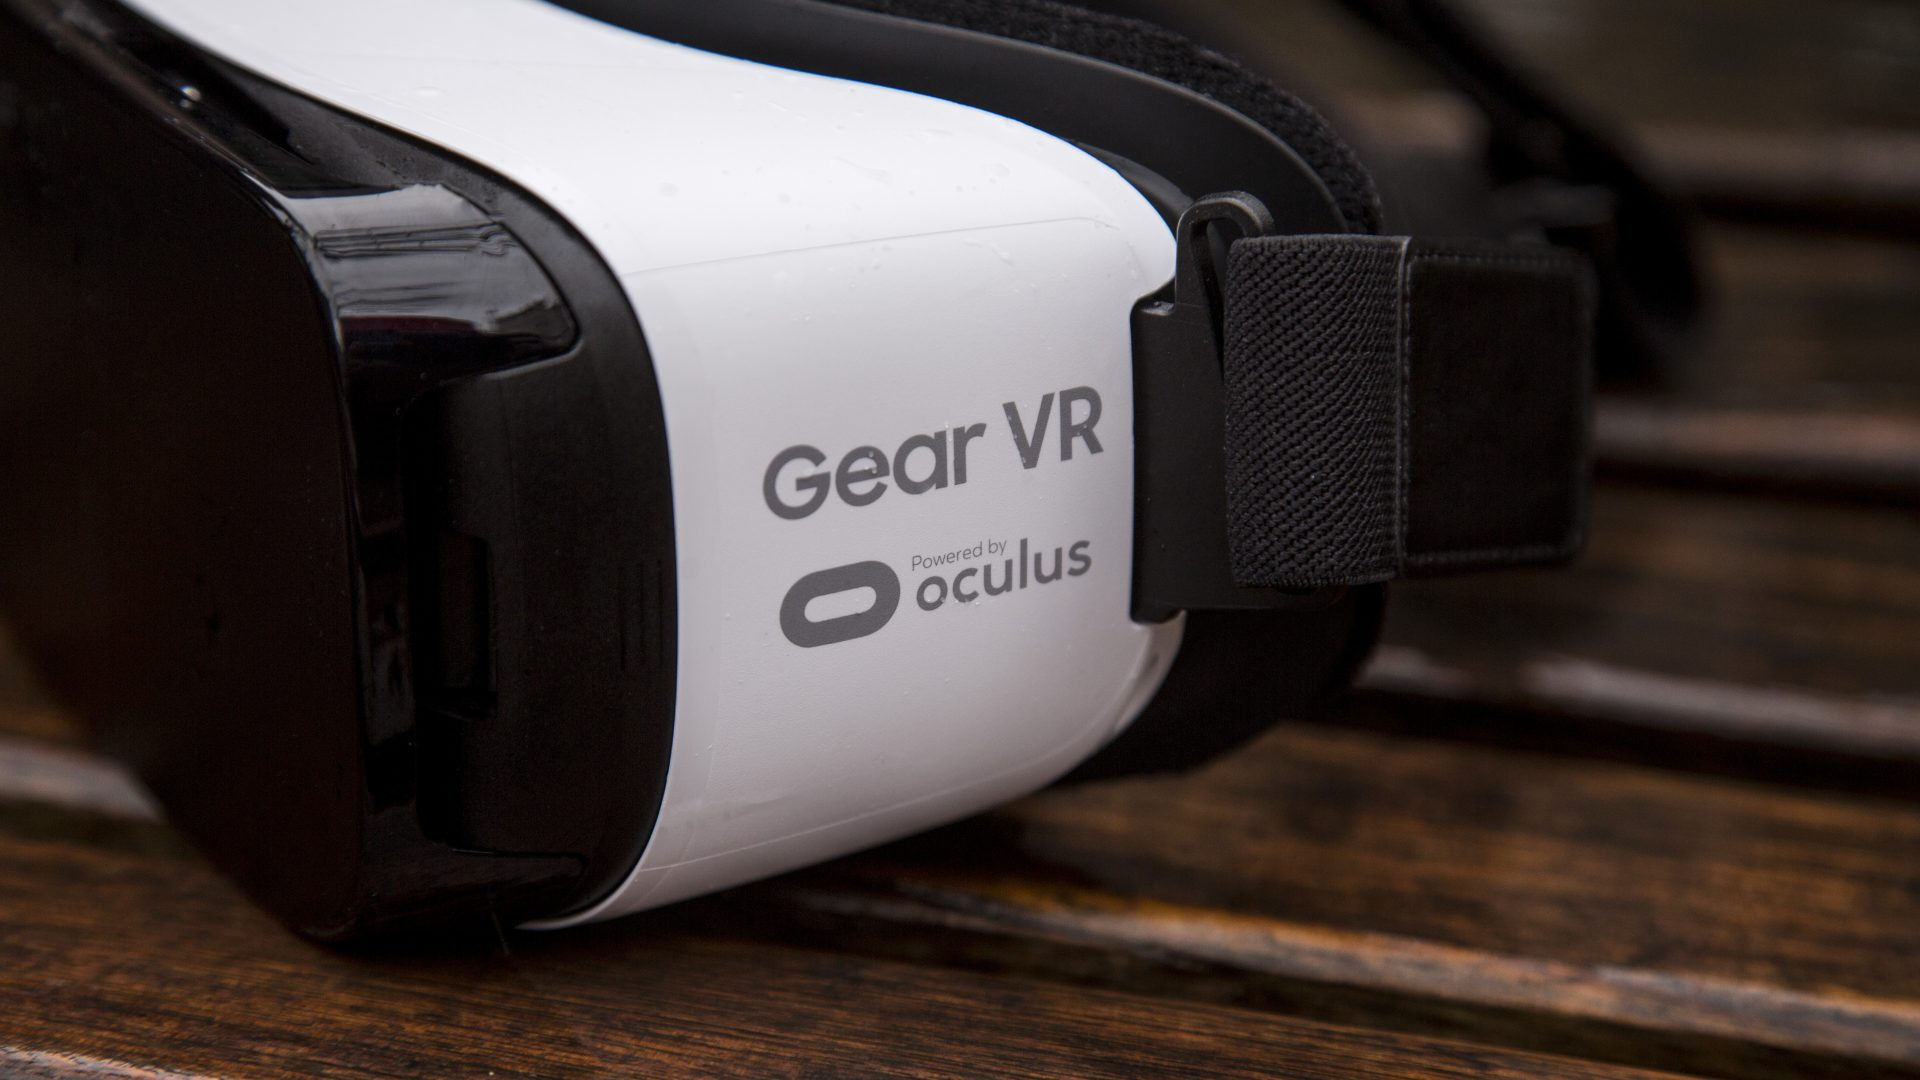 d0bfeff53a80 The complete list of Samsung Gear VR compatible phones